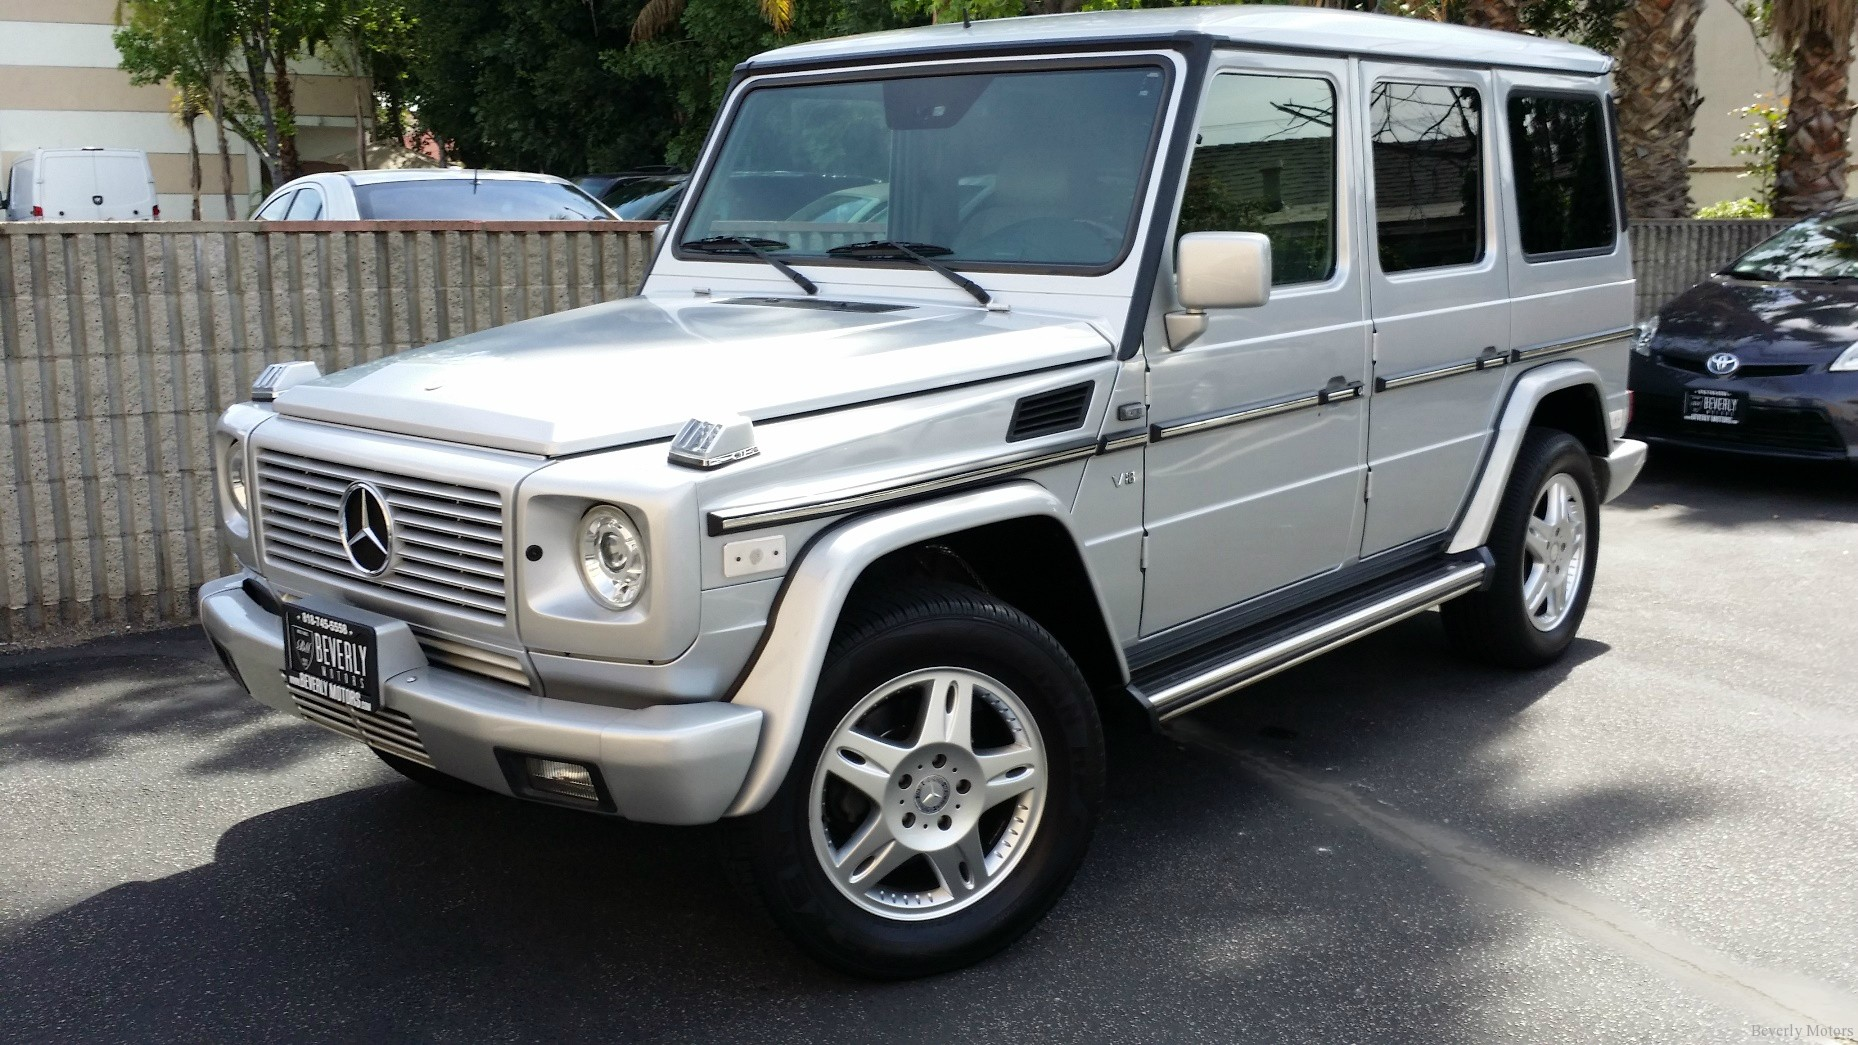 2002 mercedes benz g500 for sale beverly motors inc On 2002 mercedes benz g500 for sale